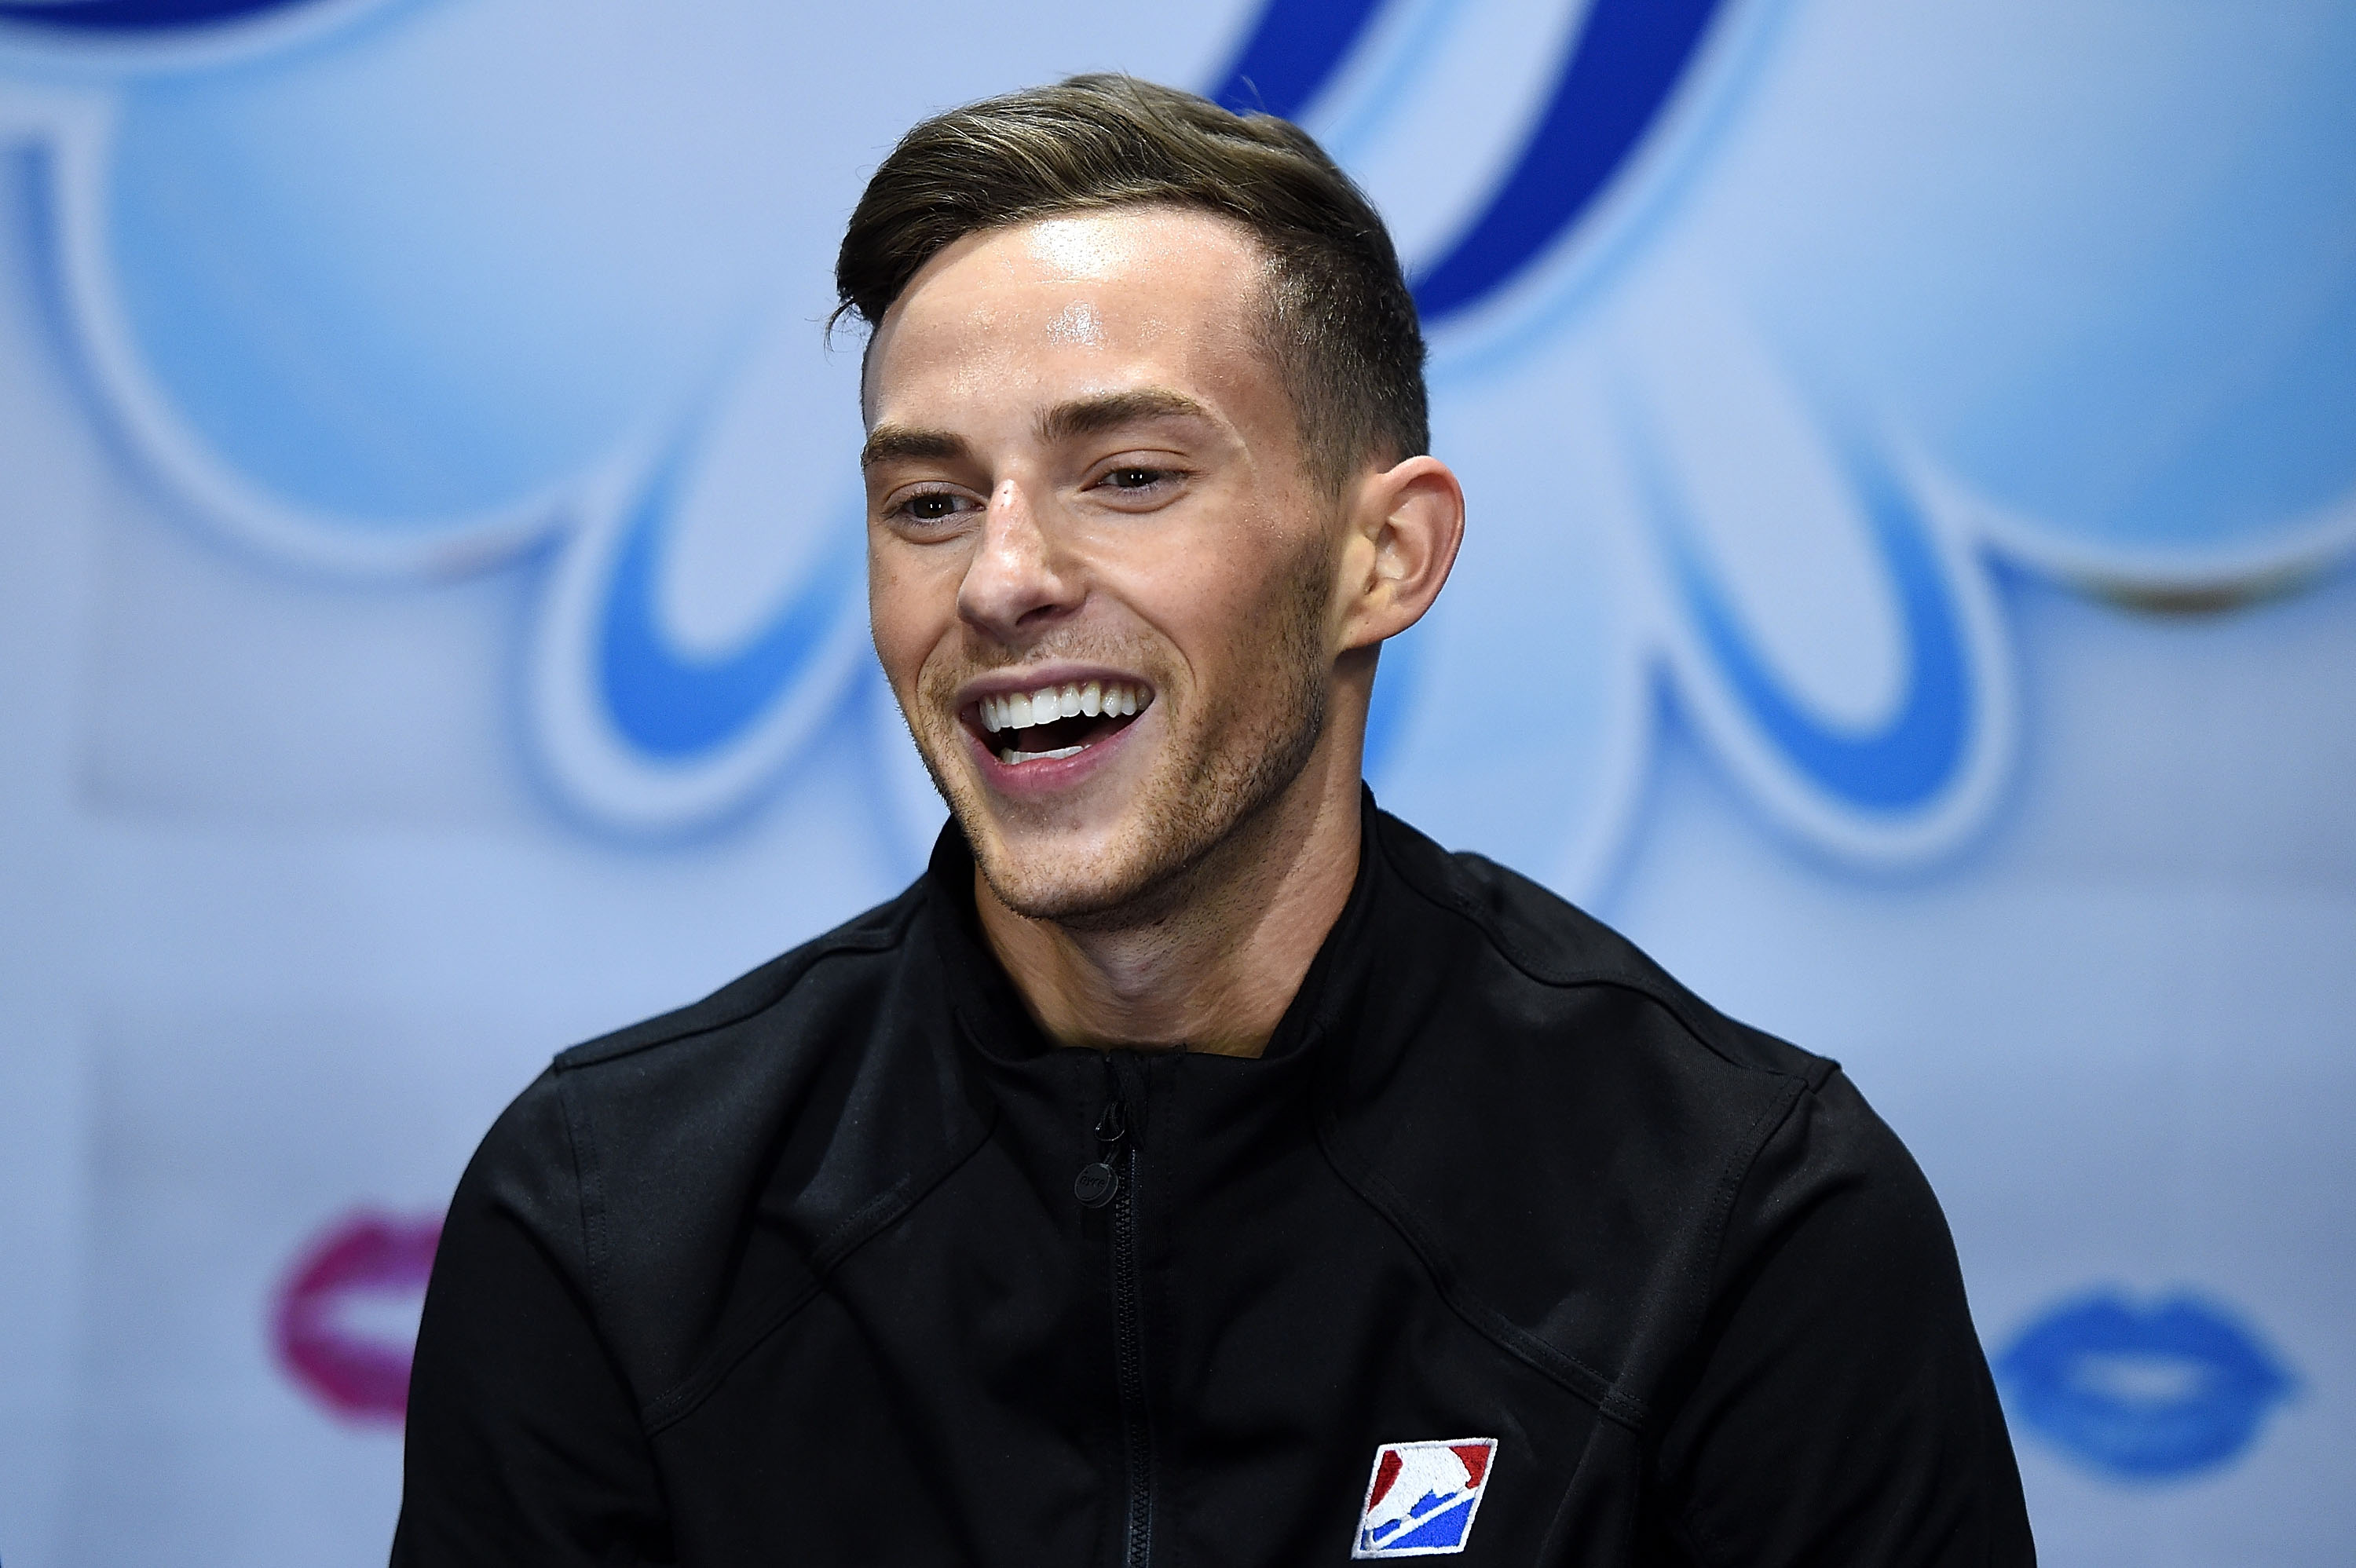 Adam Rippon of the United States waits for his score to be announced on day 2 of the Grand Prix of Skating at the Sears Centre Arena on October 22, 2016 in Chicago, Illinois.